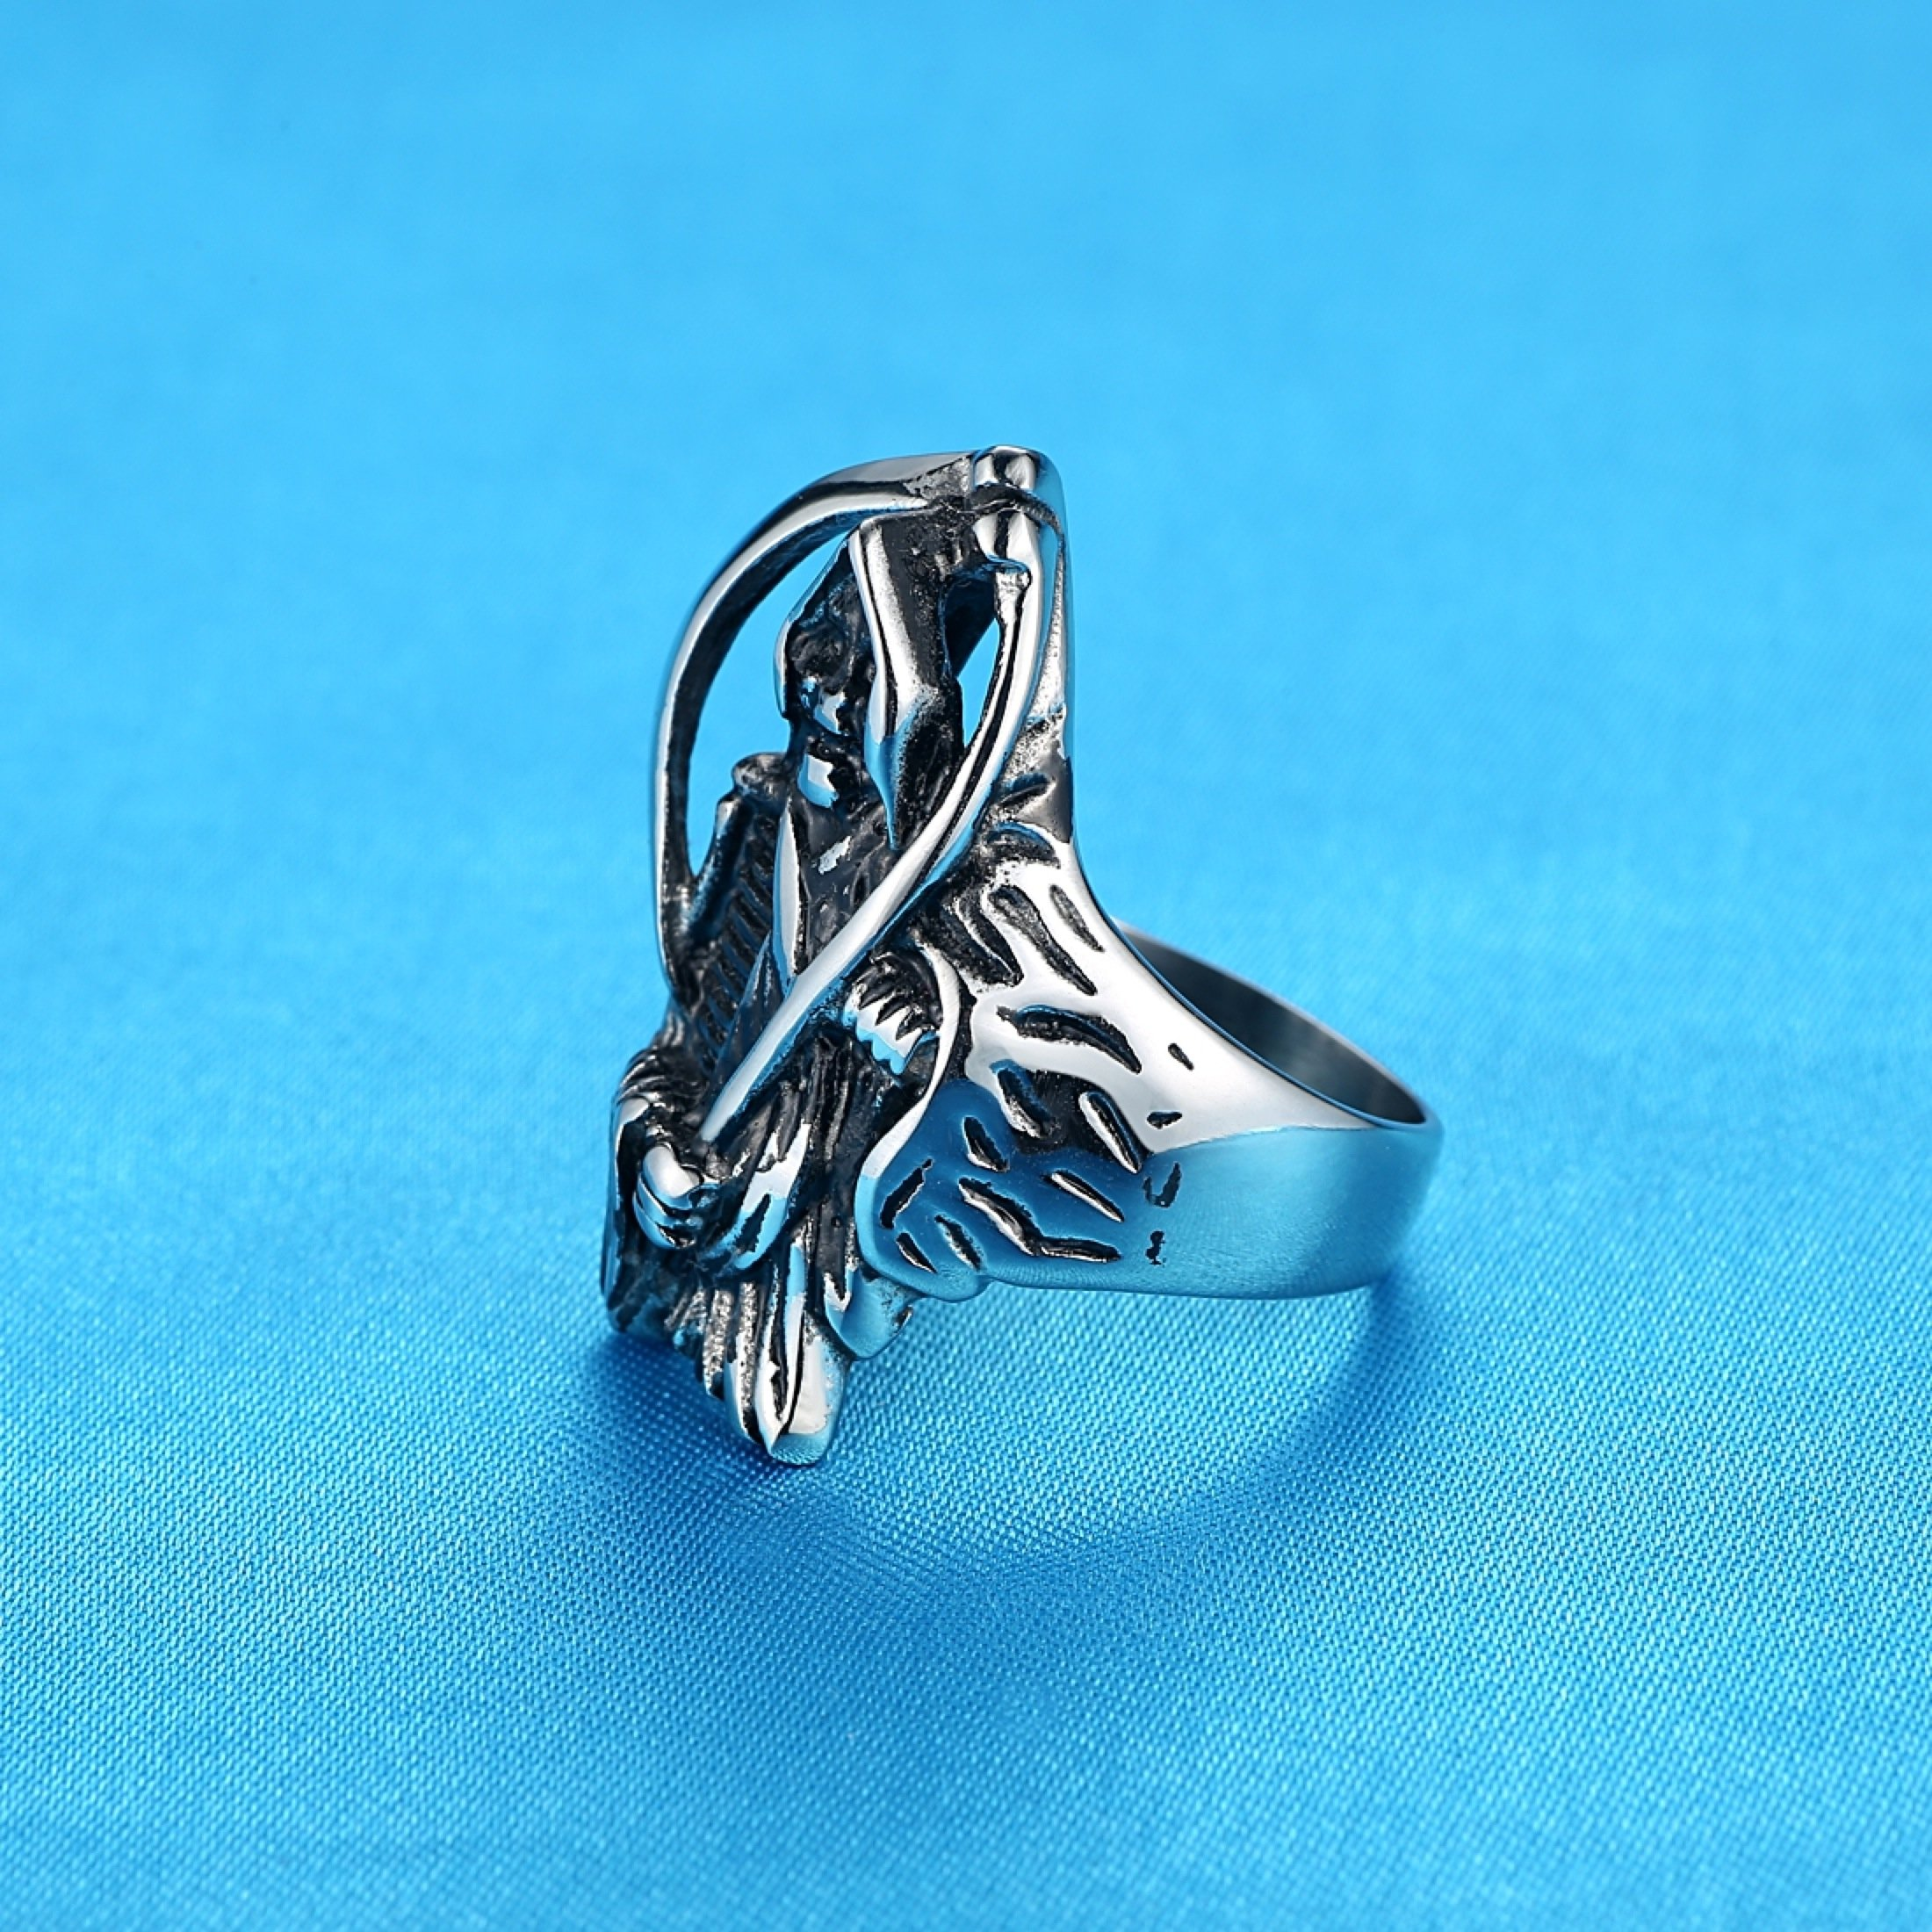 LineAve Men's Stainless Steel Grim Reaper Death Ring, Size 8, 8a5013s08 by LineAve (Image #3)